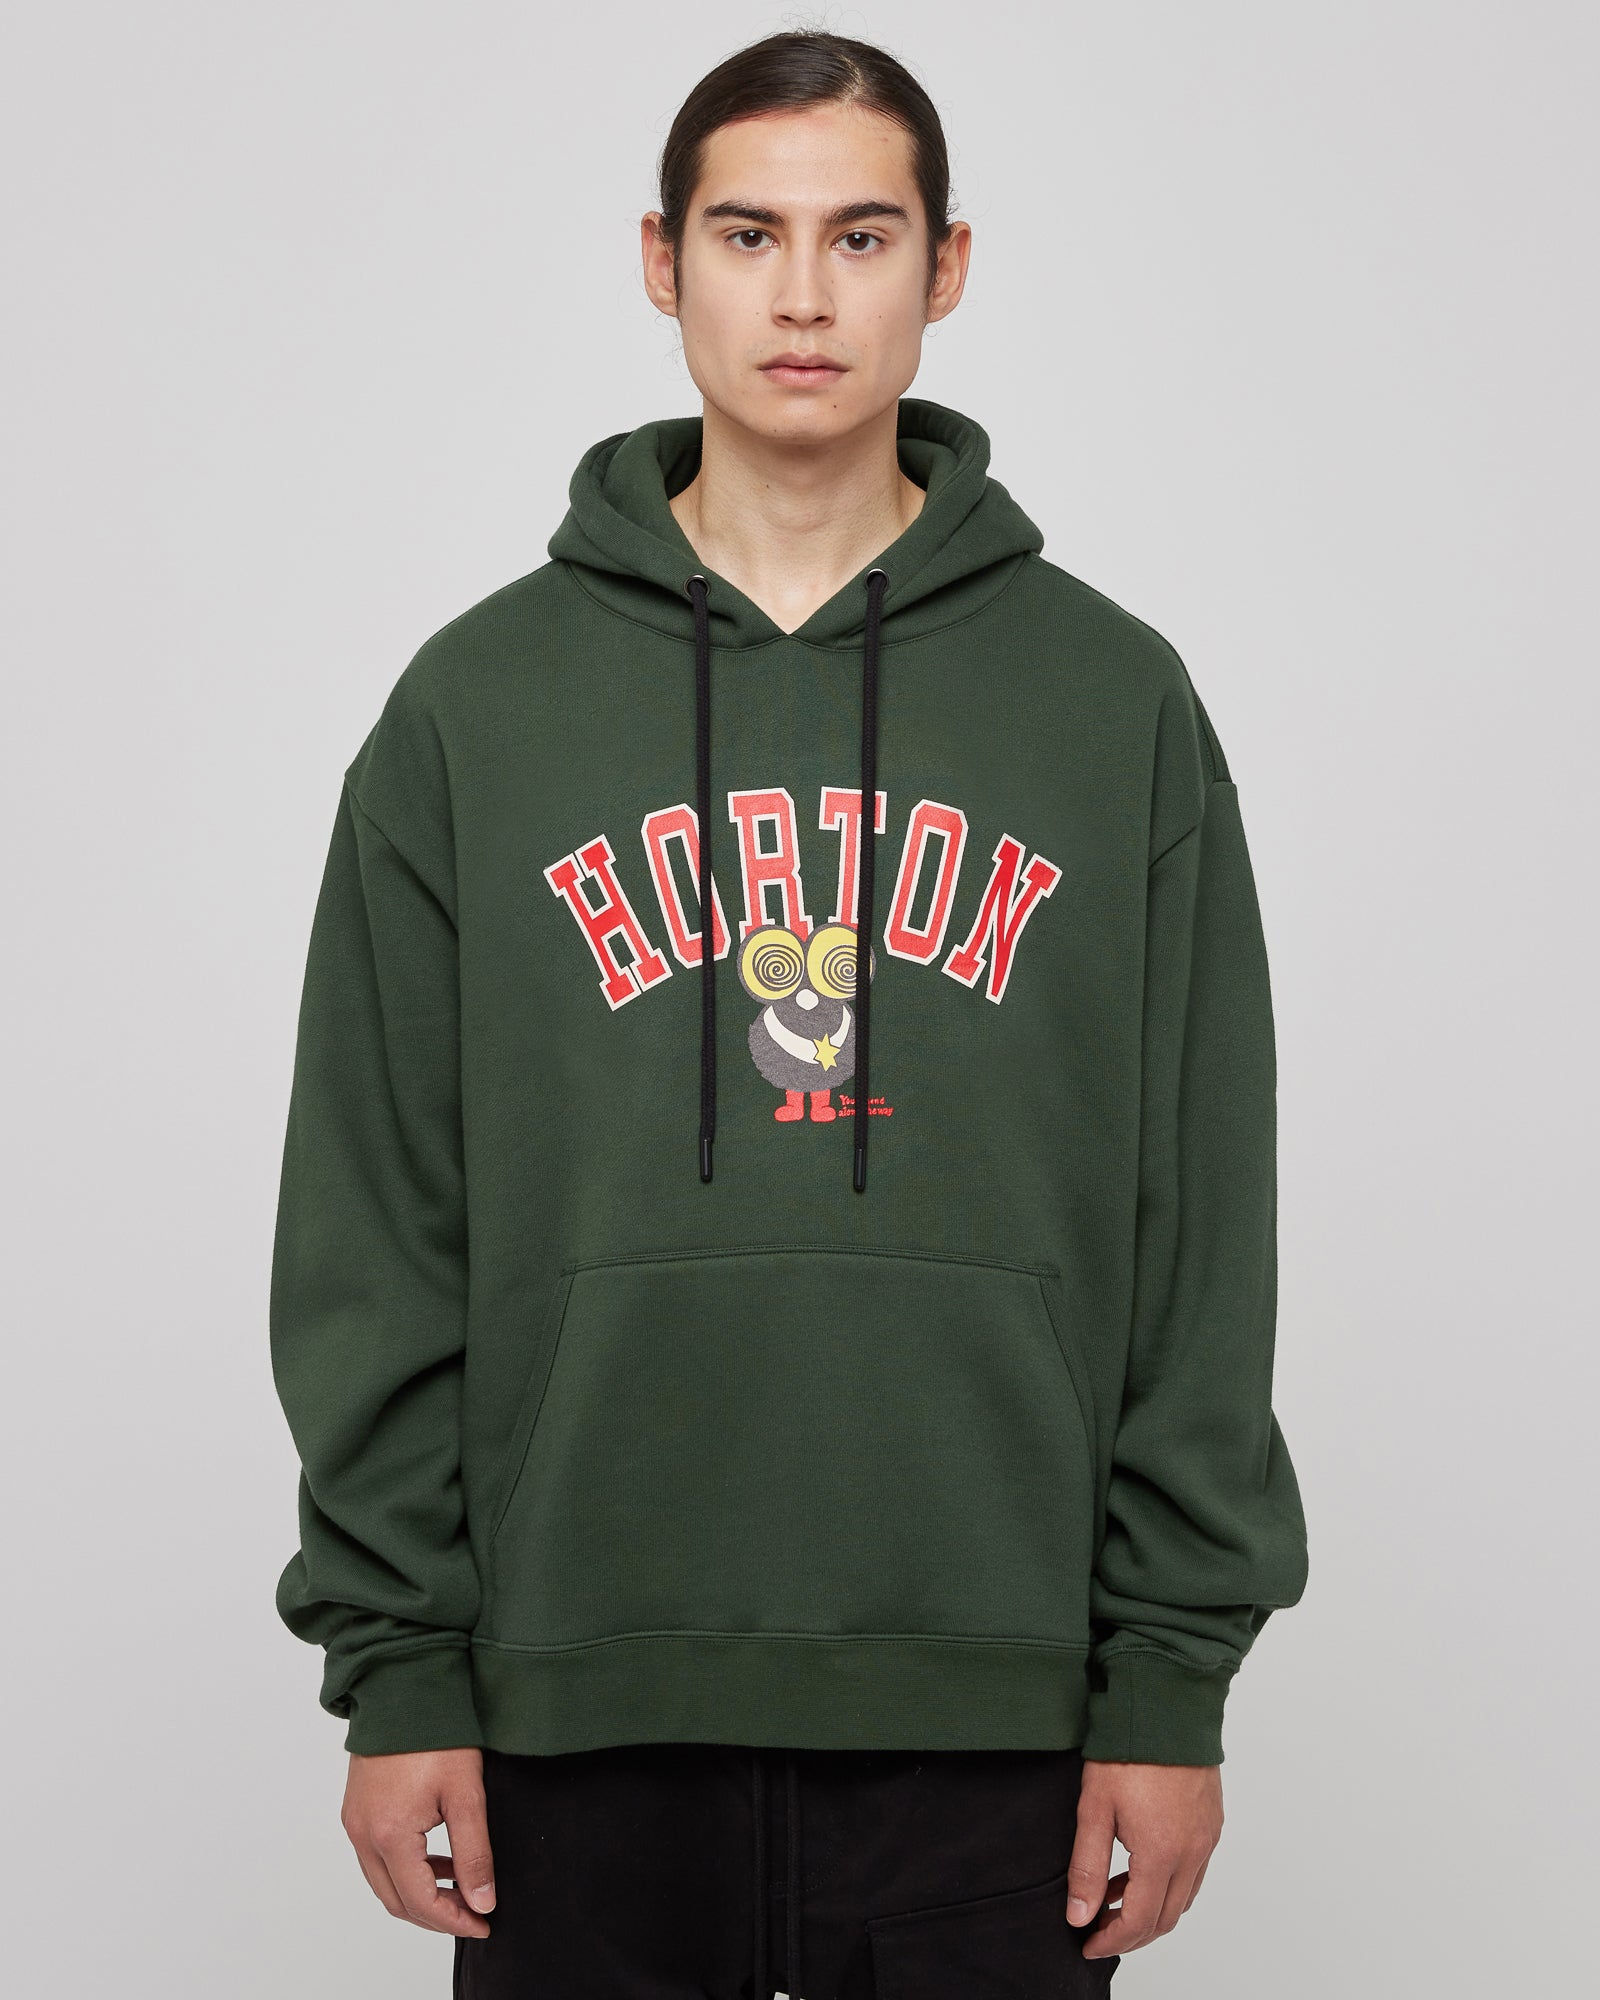 Horton Hoodie in Forest Green